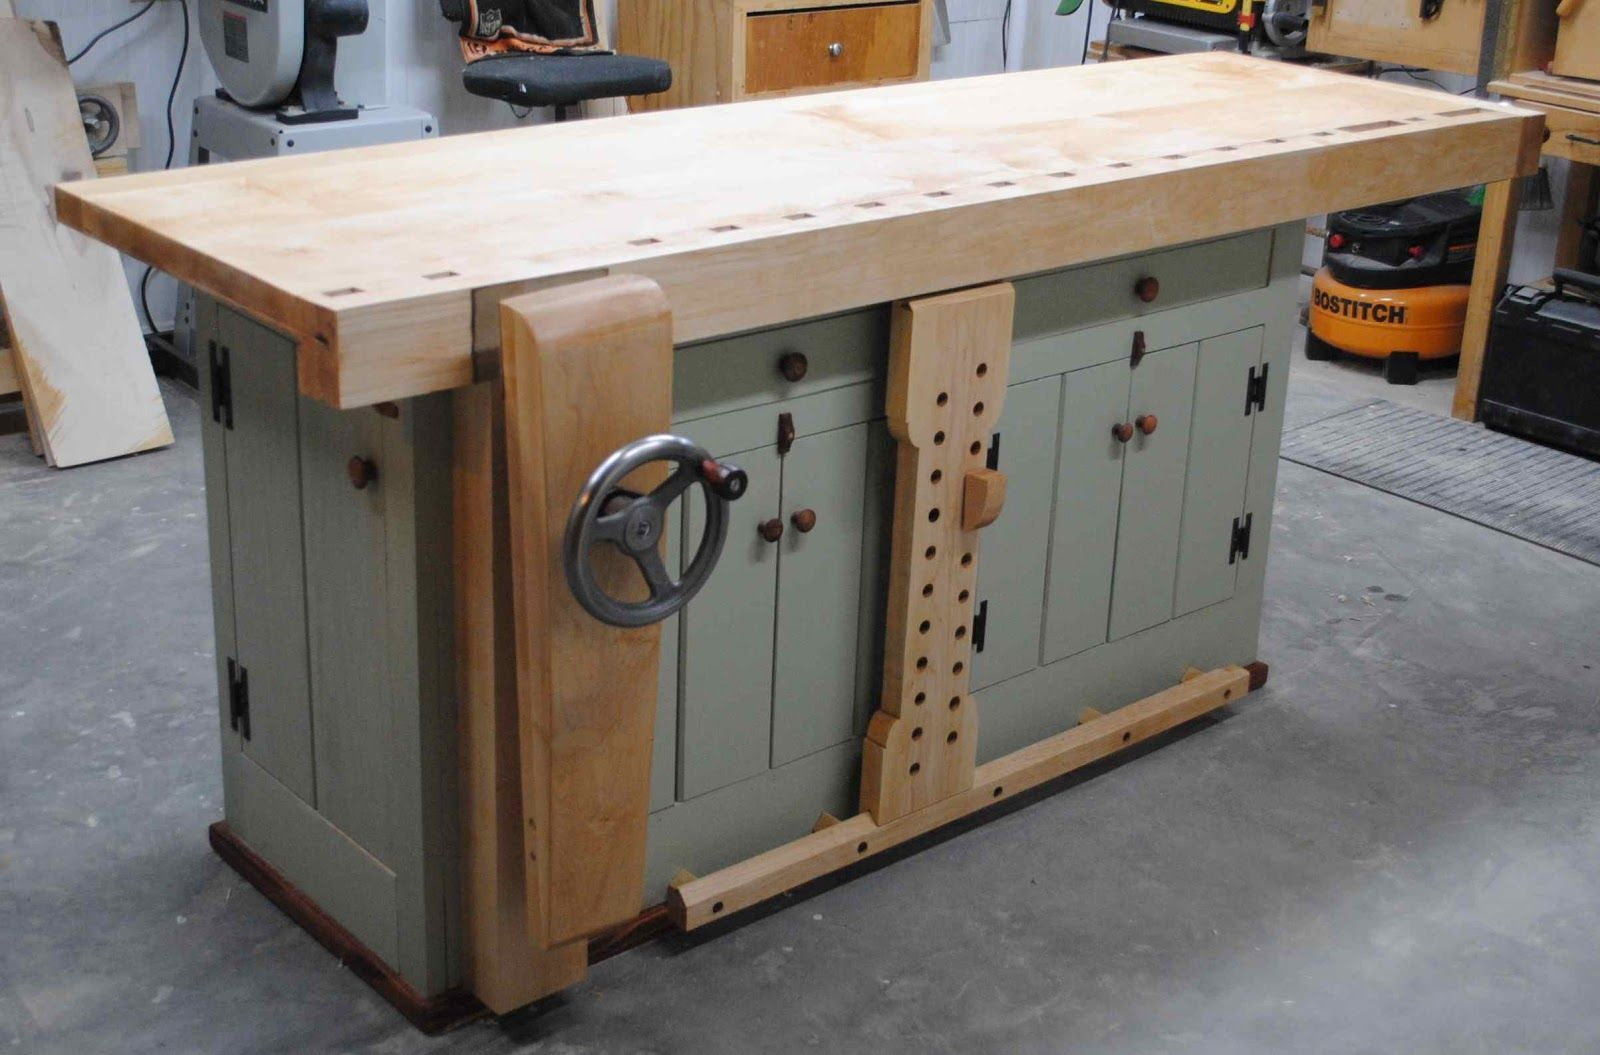 Woodworking Bench Ideas Part - 18: First Light Woodworking: Bench Build - Complete !! #woodworkingbench